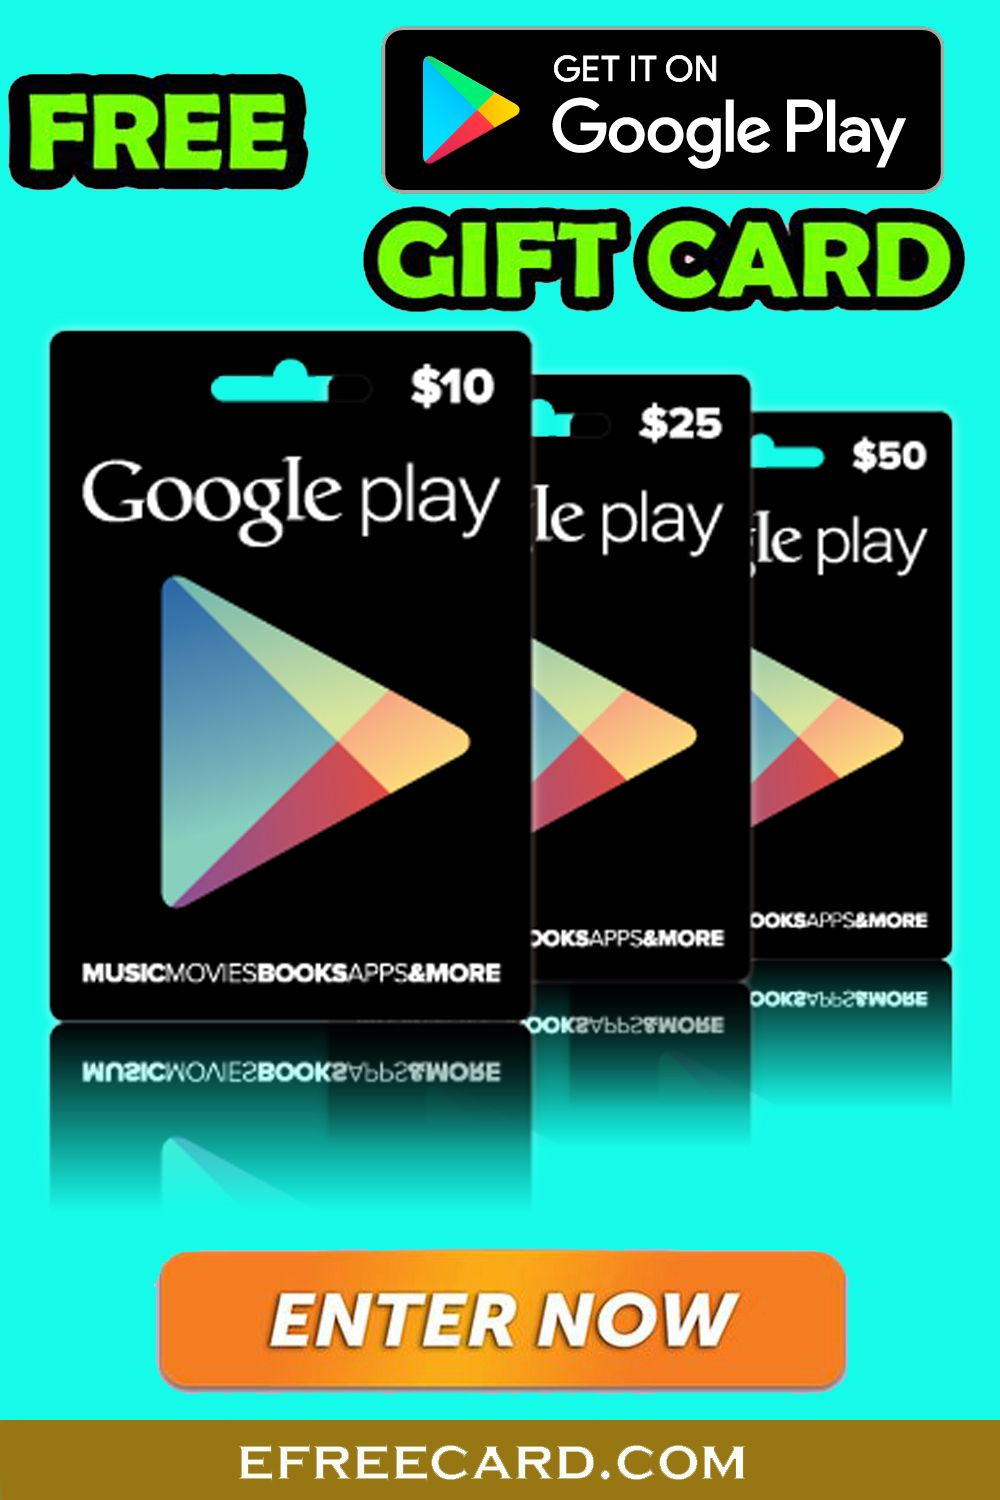 How To Get Redeem Code For Google Playstore 2020 Google Play Gift Card Amazon Gift Card Free Gift Card Promotions